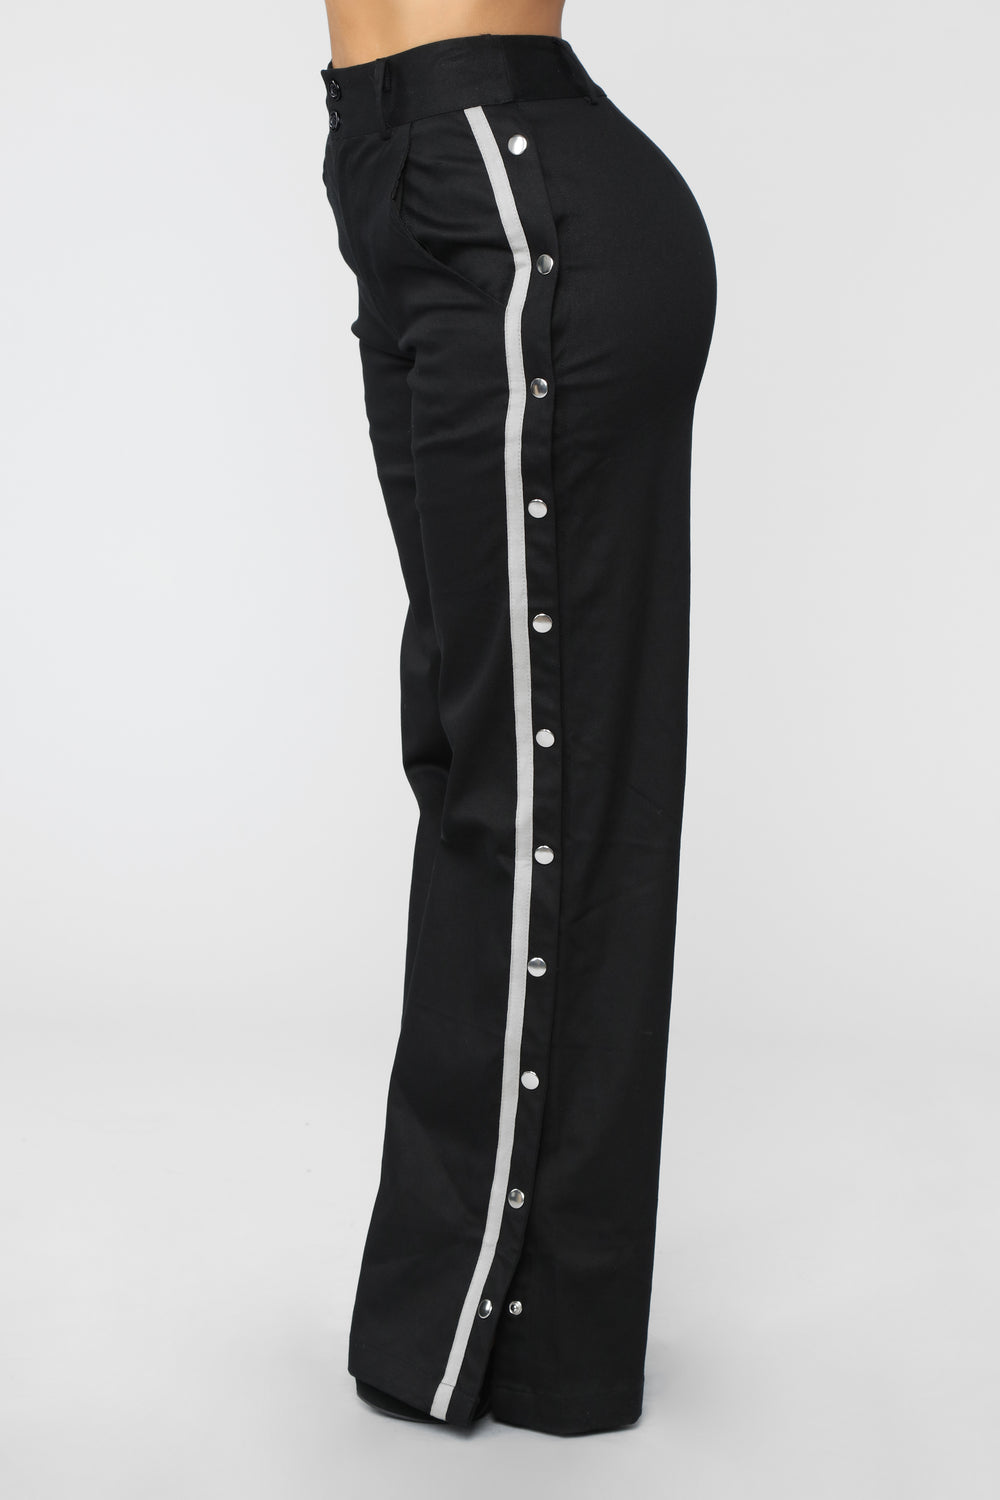 Snap To The Top Pants - Black/Grey